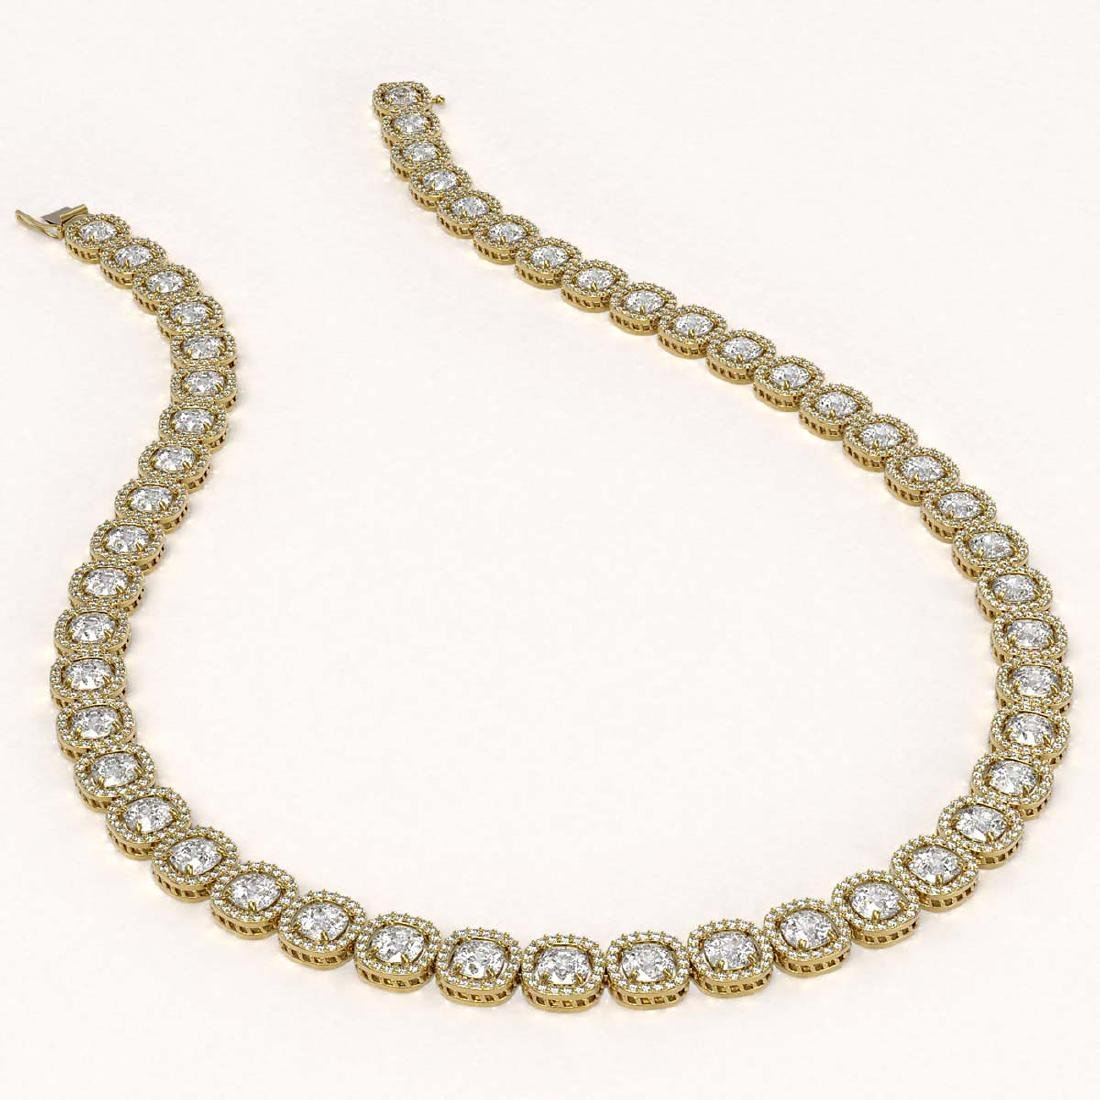 37.60 CTW Cushion Diamond Designer Necklace 18K Yellow - 2